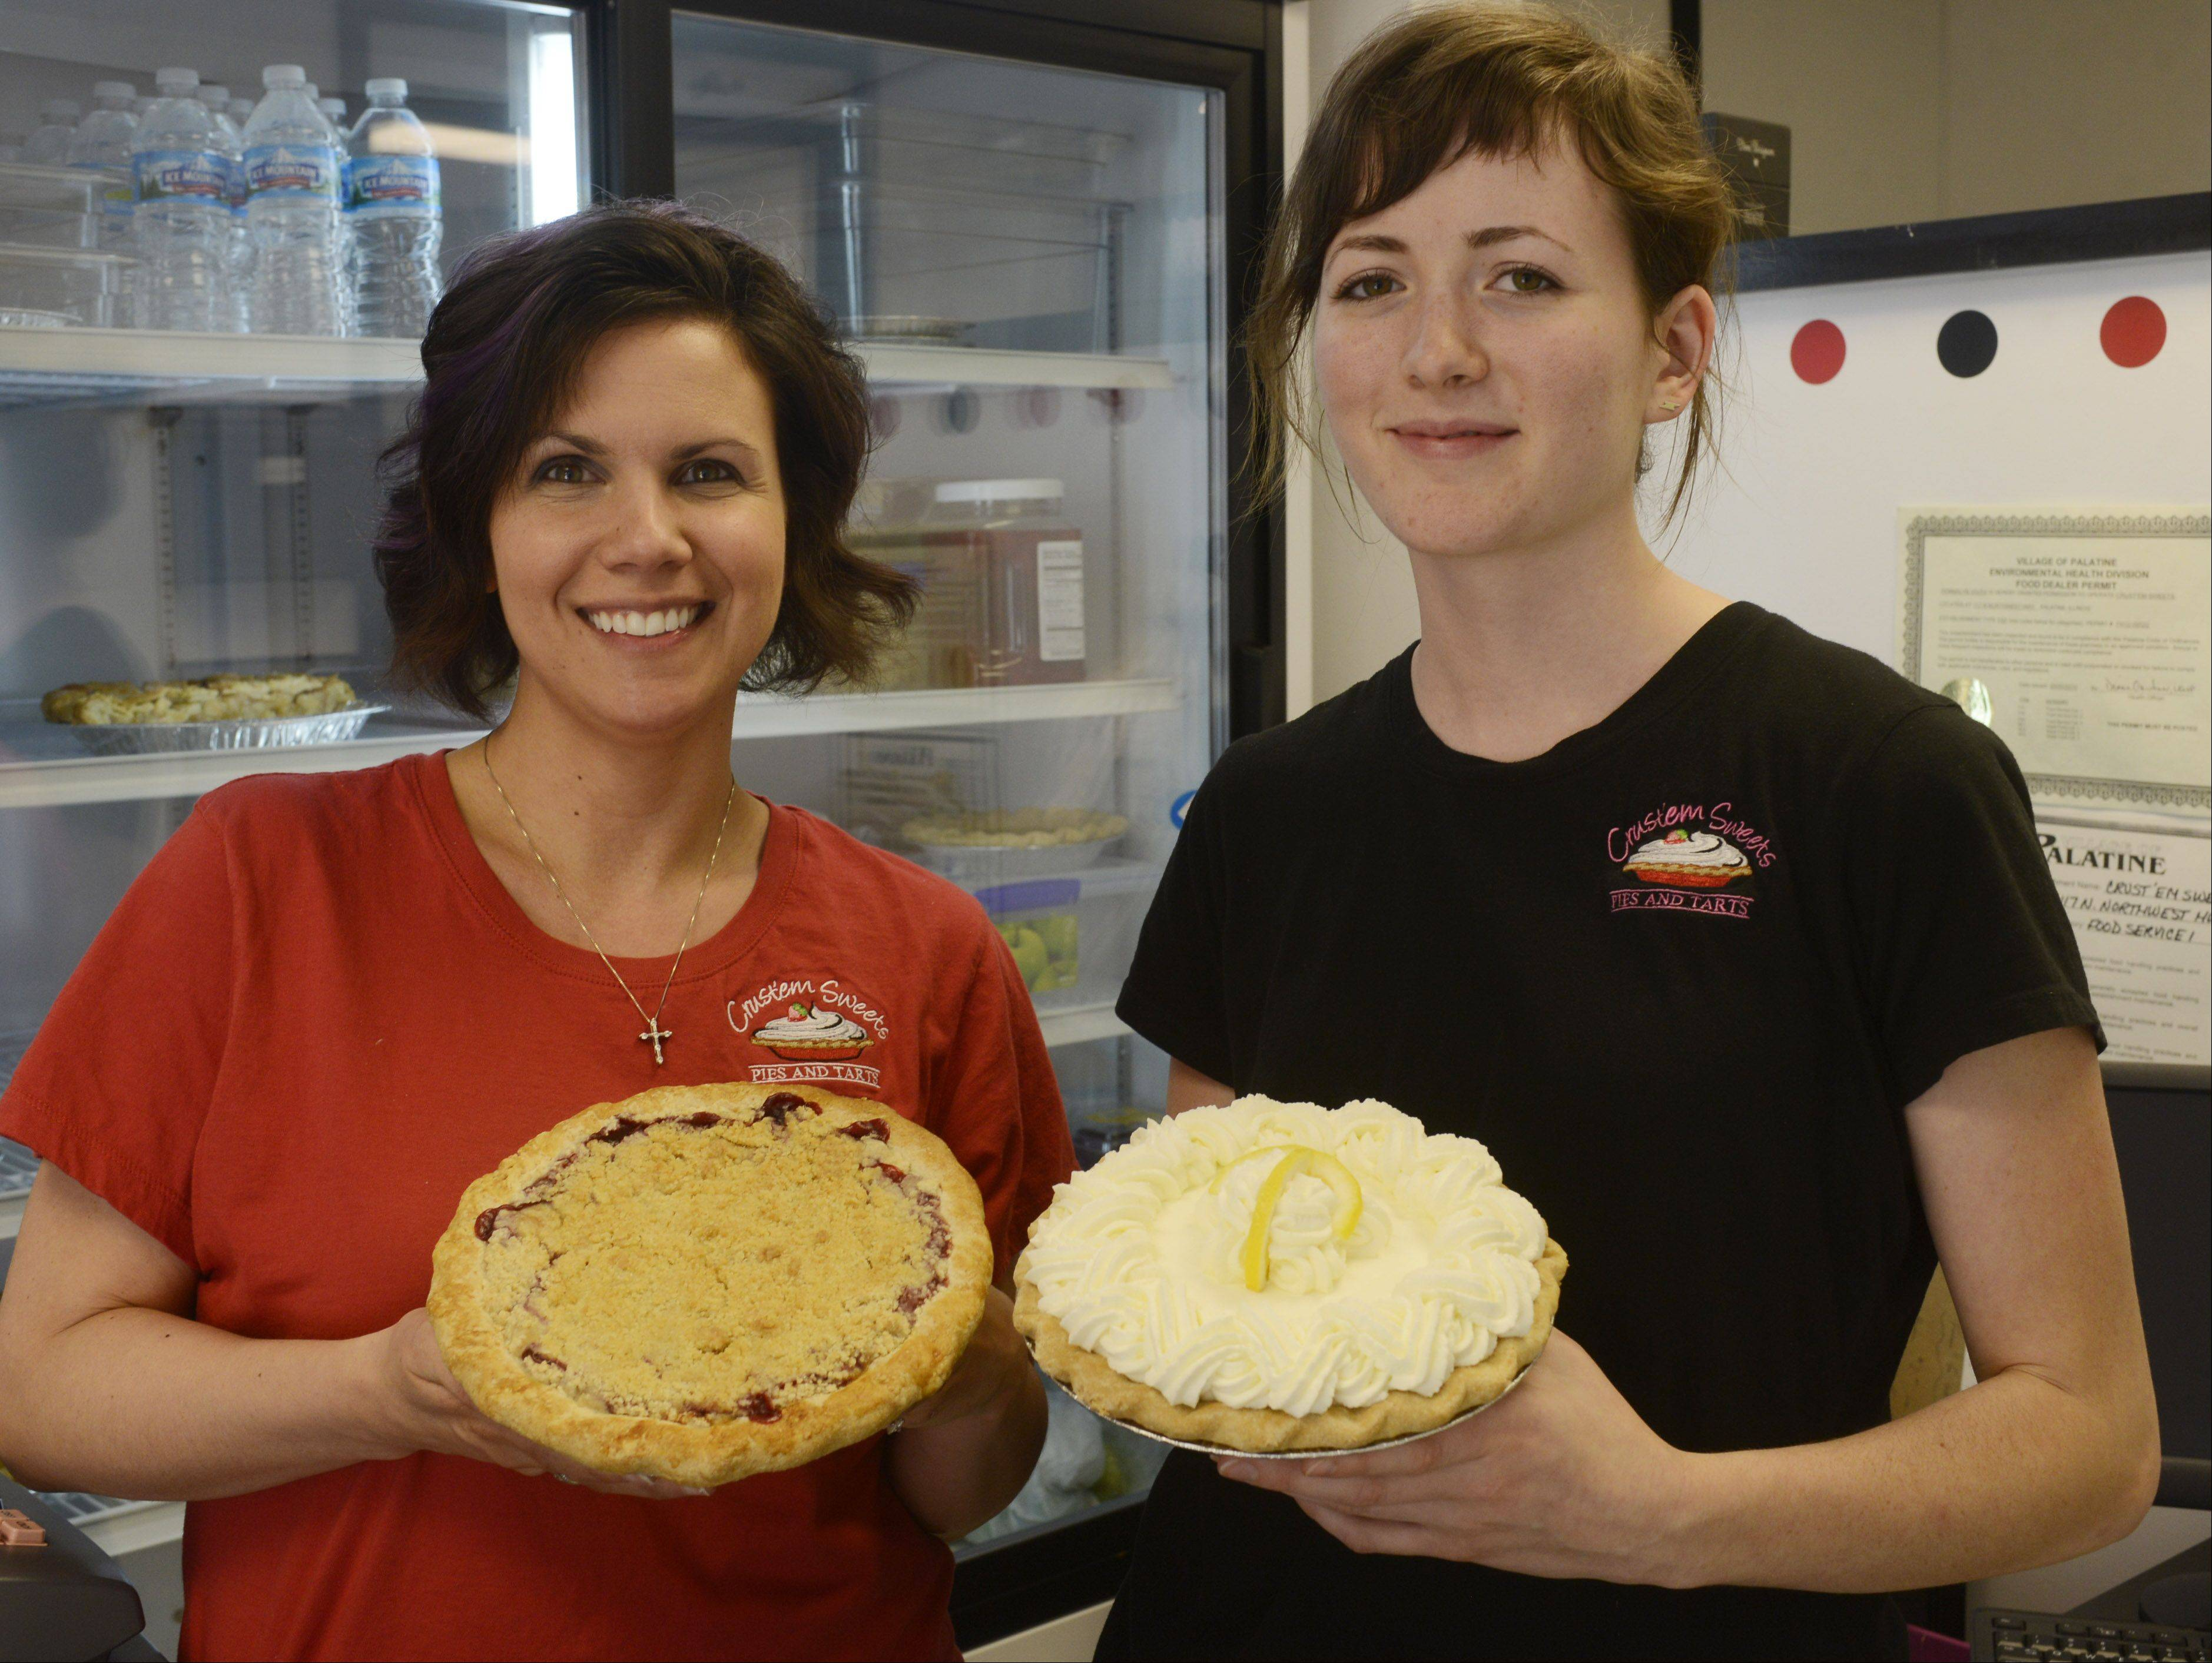 Owner/baker Donnalyn Vojta, left, and baker Amanda Martensen hold pies at Crust'em Sweets in Palatine.